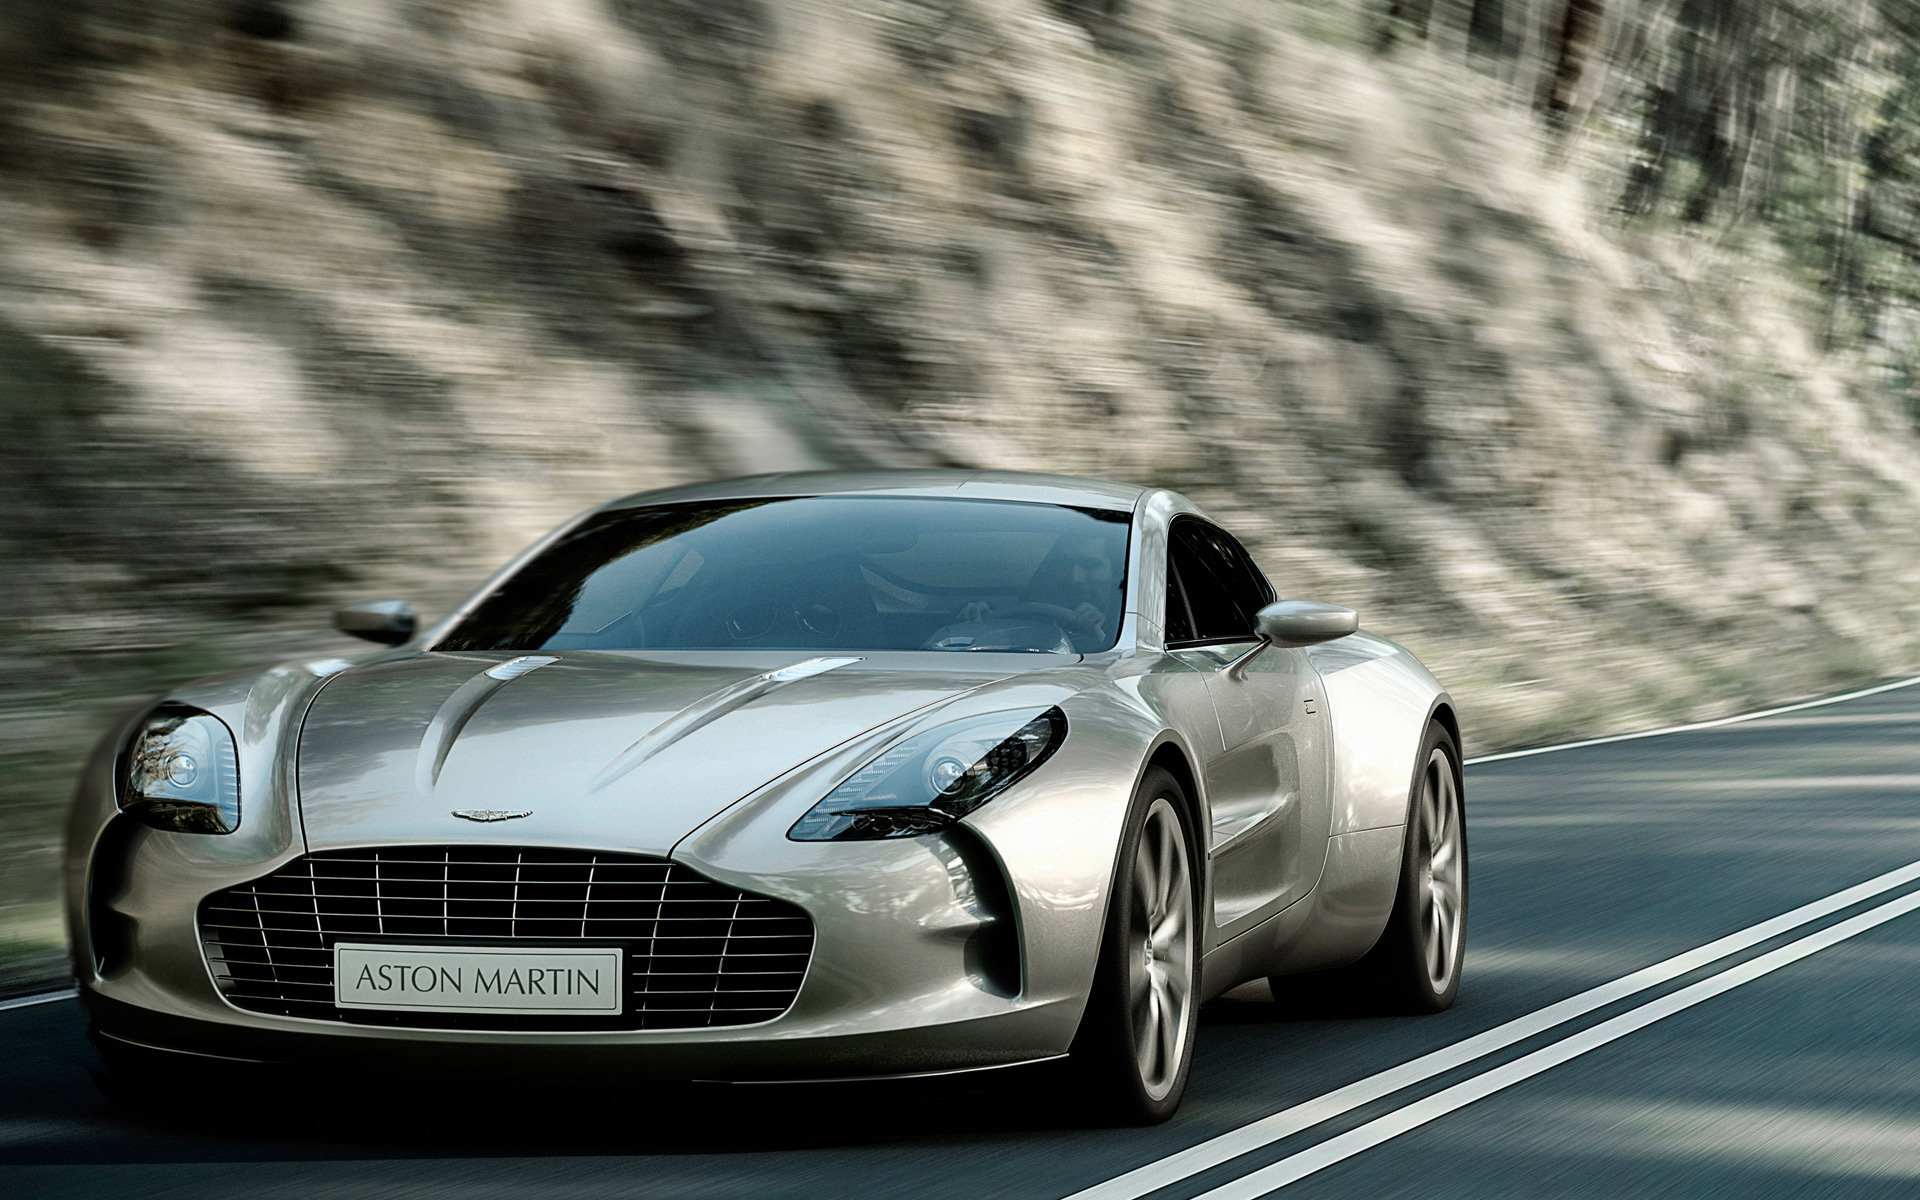 29 Aston Martin One 77 Hd Wallpapers Background Images